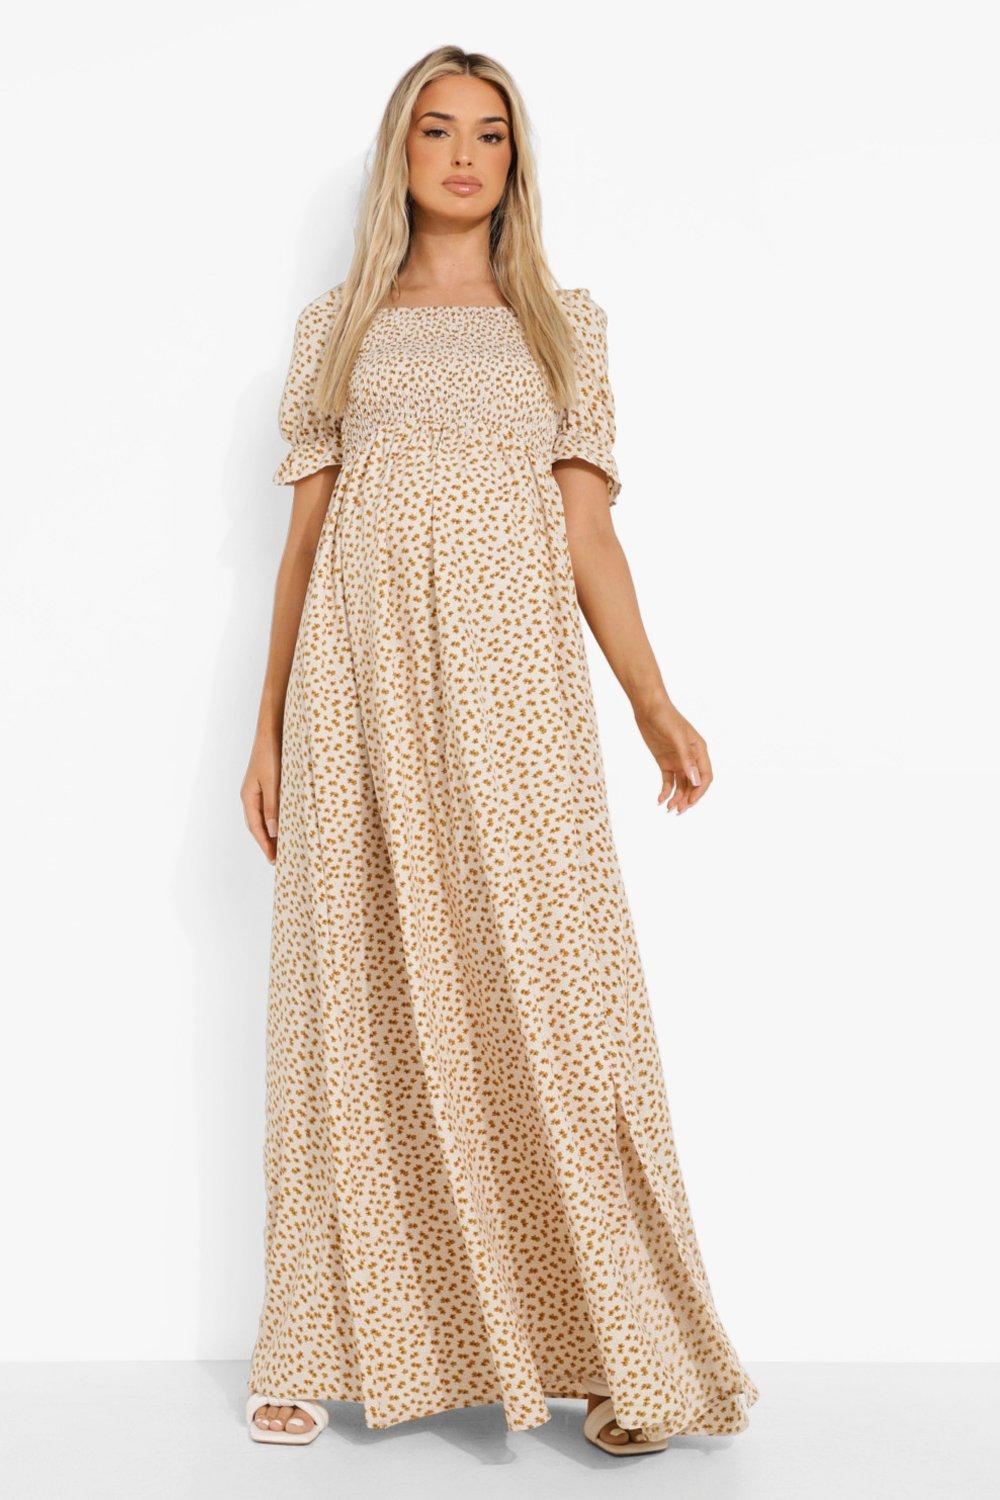 Vintage Maternity Clothes History Womens Maternity Floral Square Neck Maxi Dress - White - 12 $20.00 AT vintagedancer.com